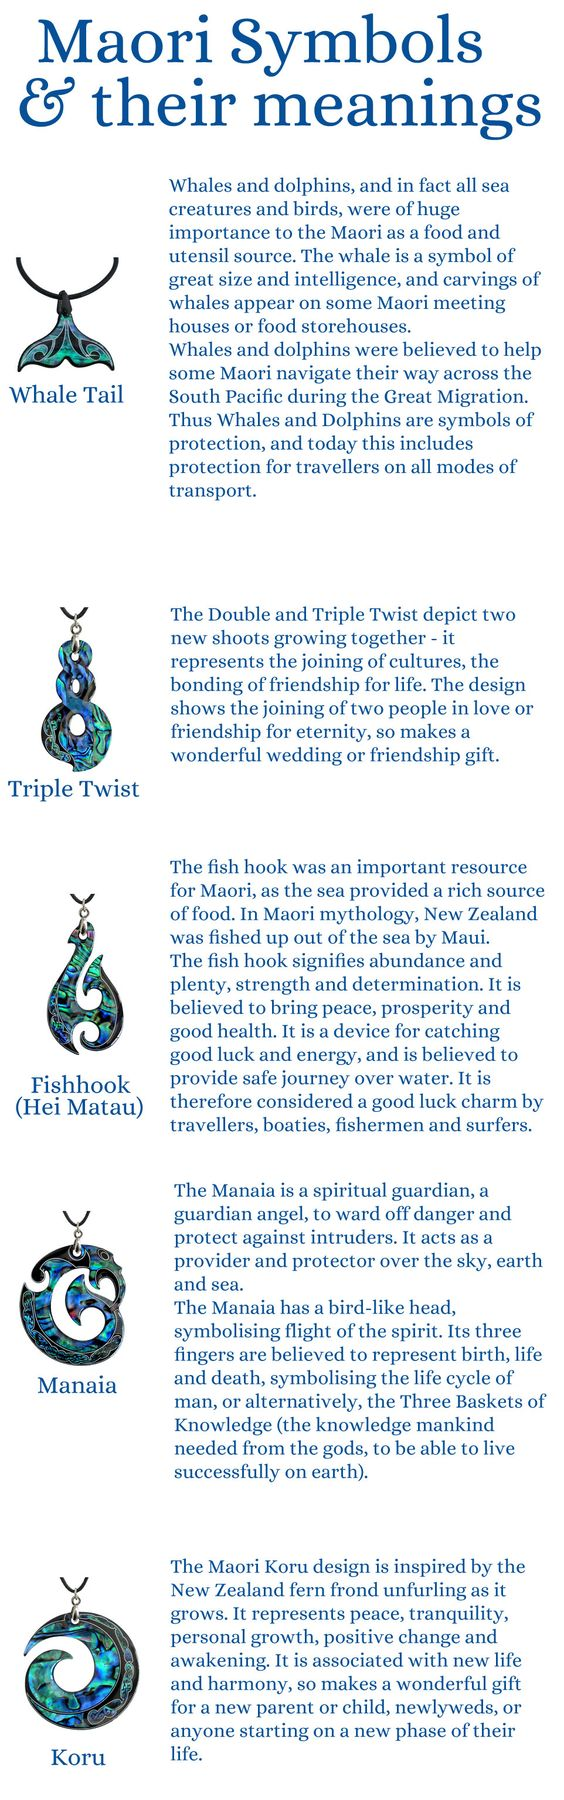 A quick reference to the maori shapes and symbols used in